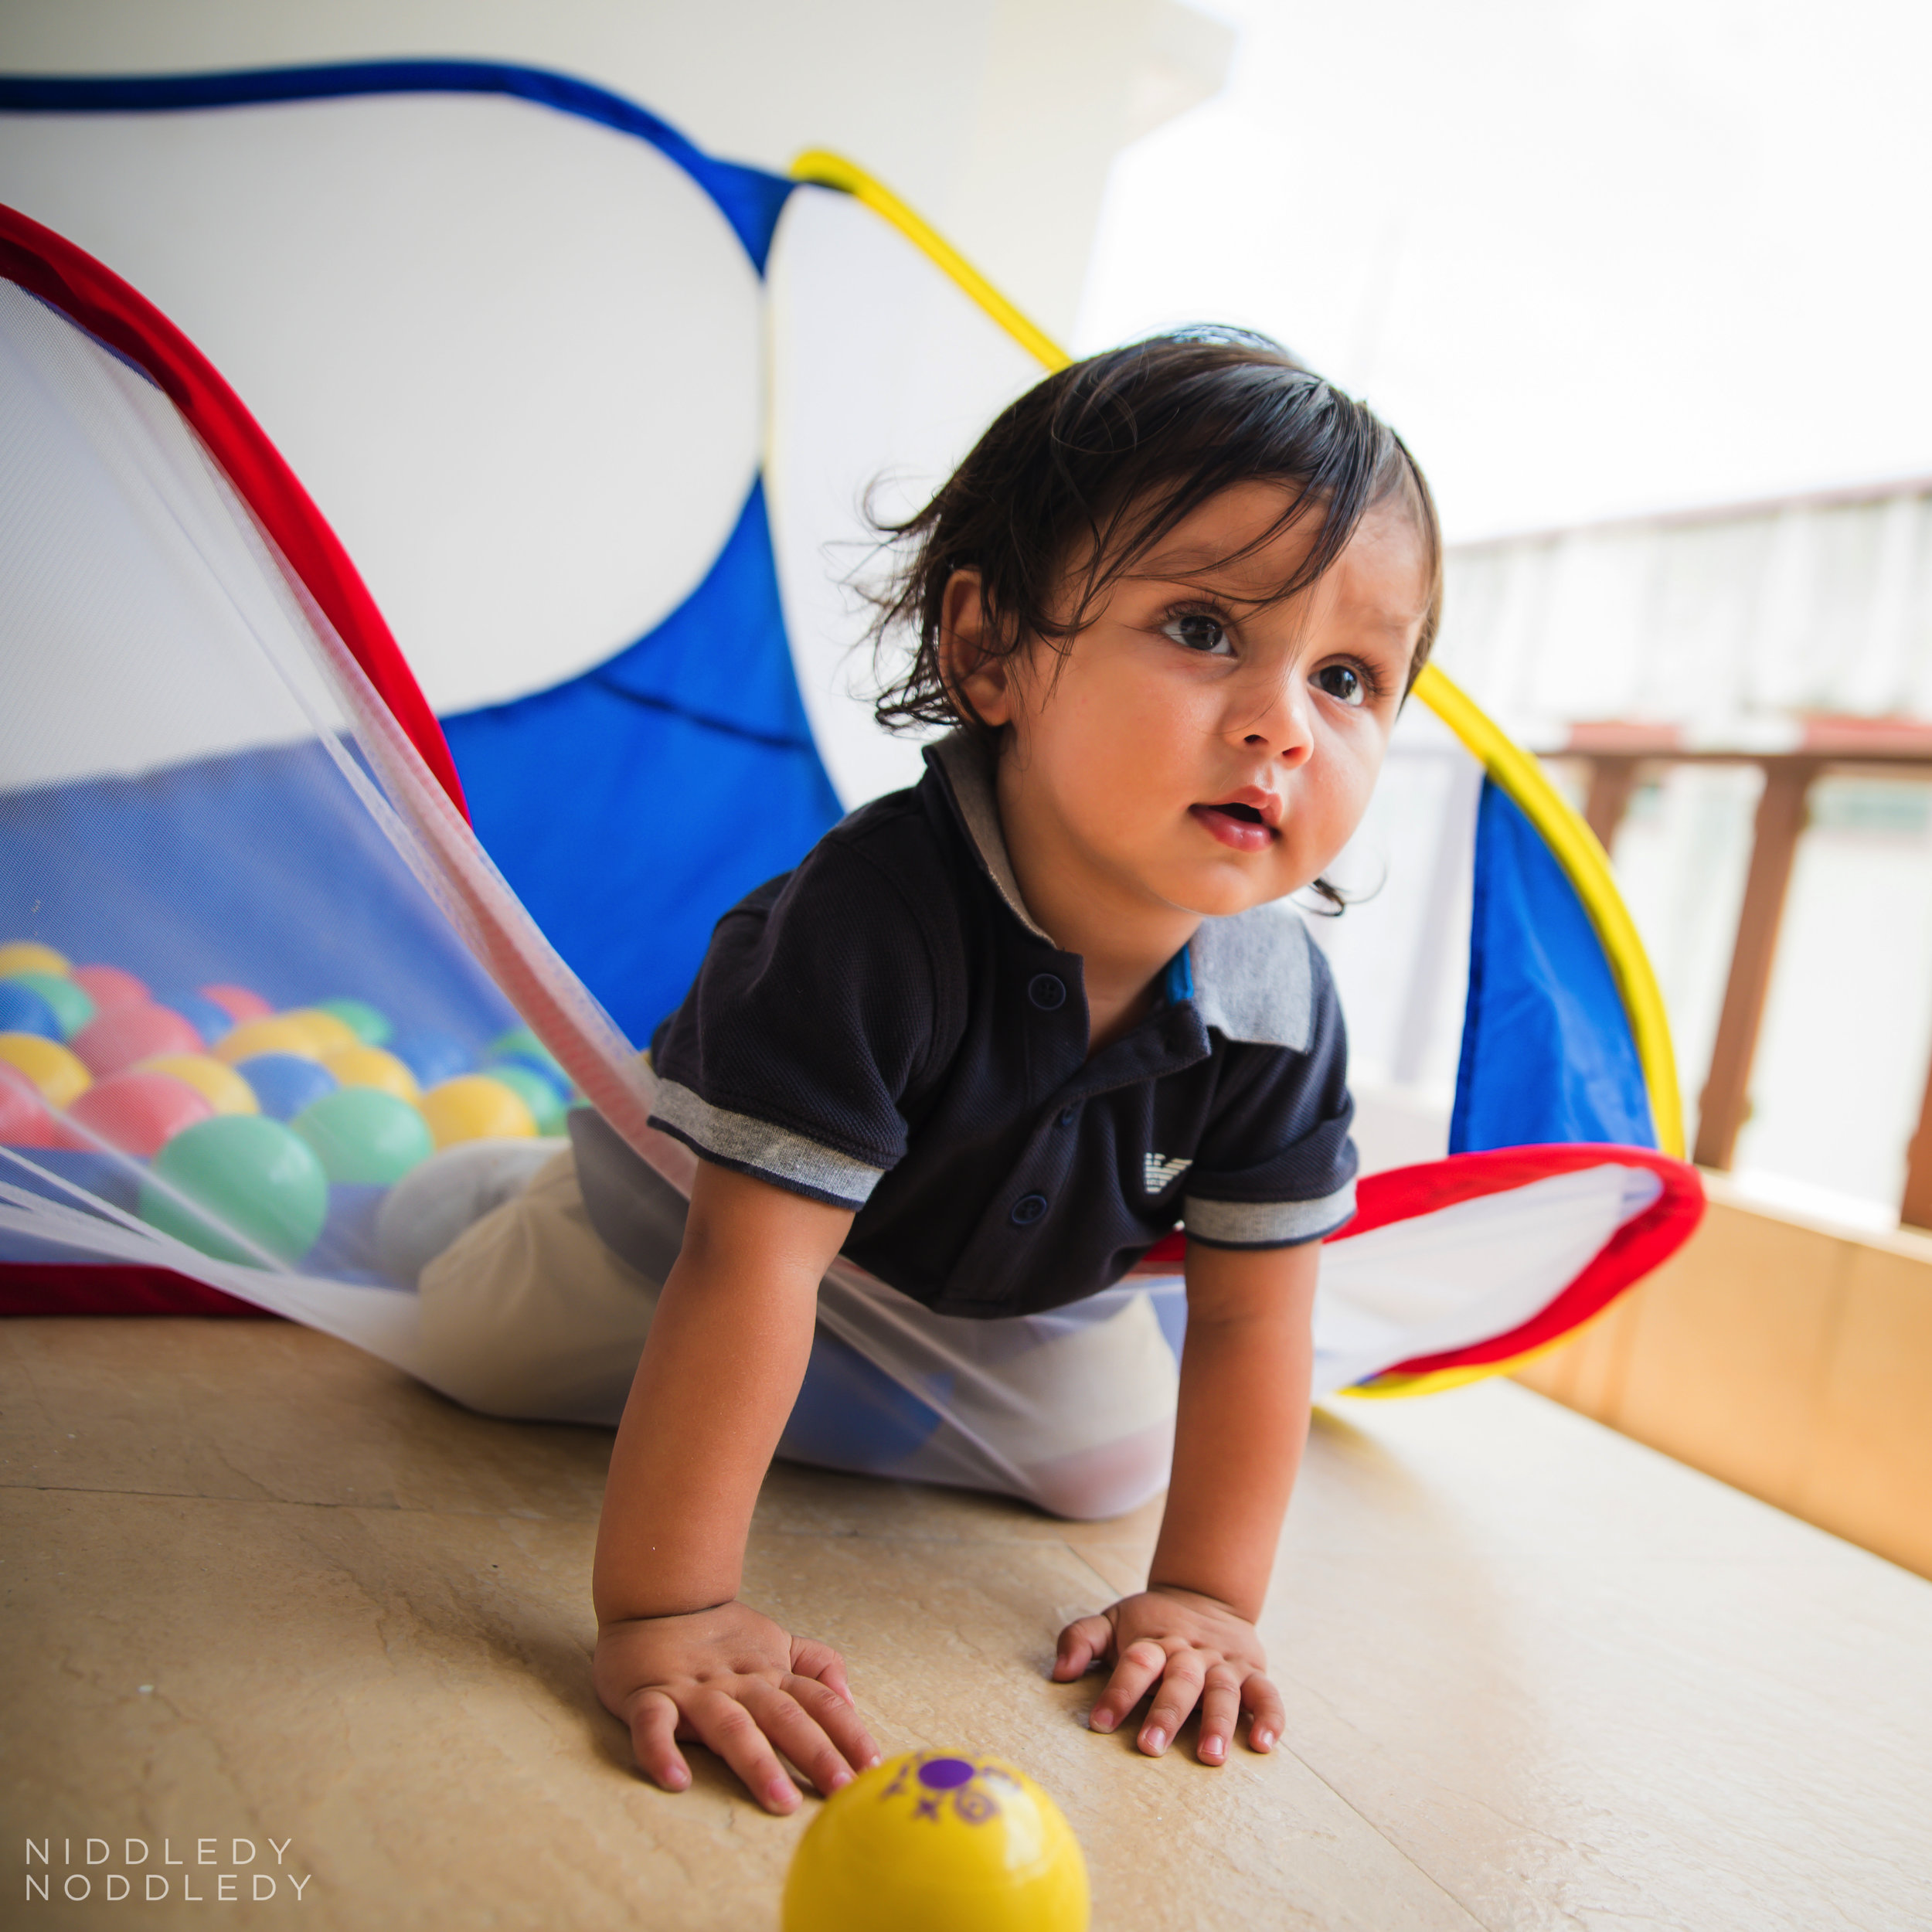 Avyaan's Day Photoshoot ❤ NiddledyNoddledy.com ~ Bumps to Babies Photography, Kolkata - 06.jpg